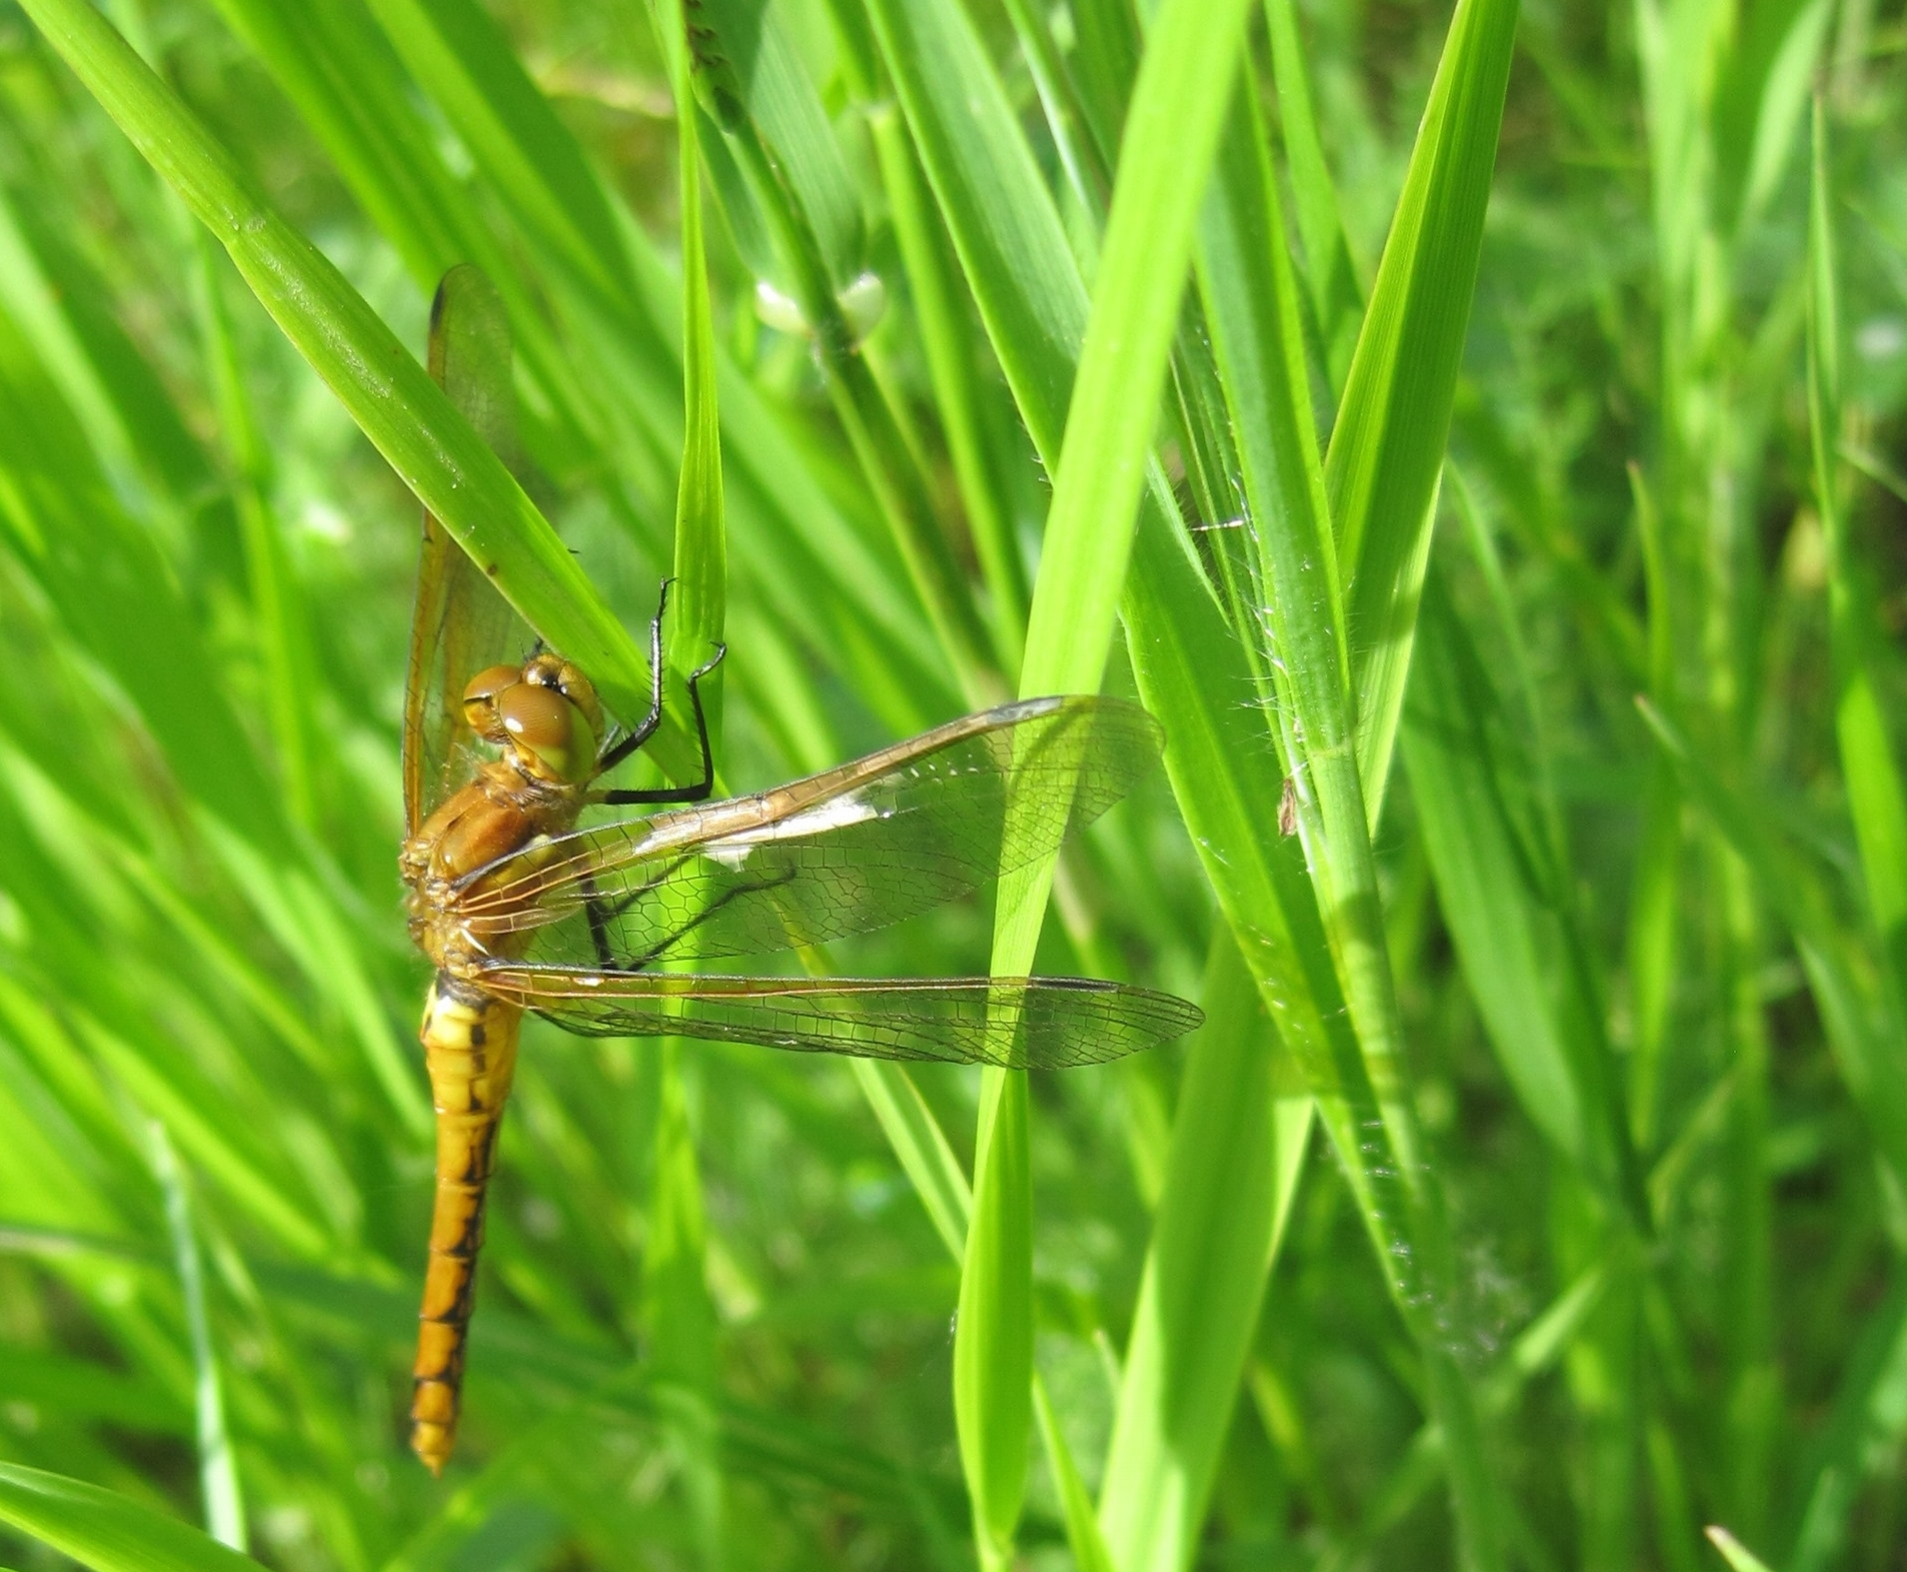 While an adult dragonfly that is found above the water line on stream banks is probably familiar to most people...